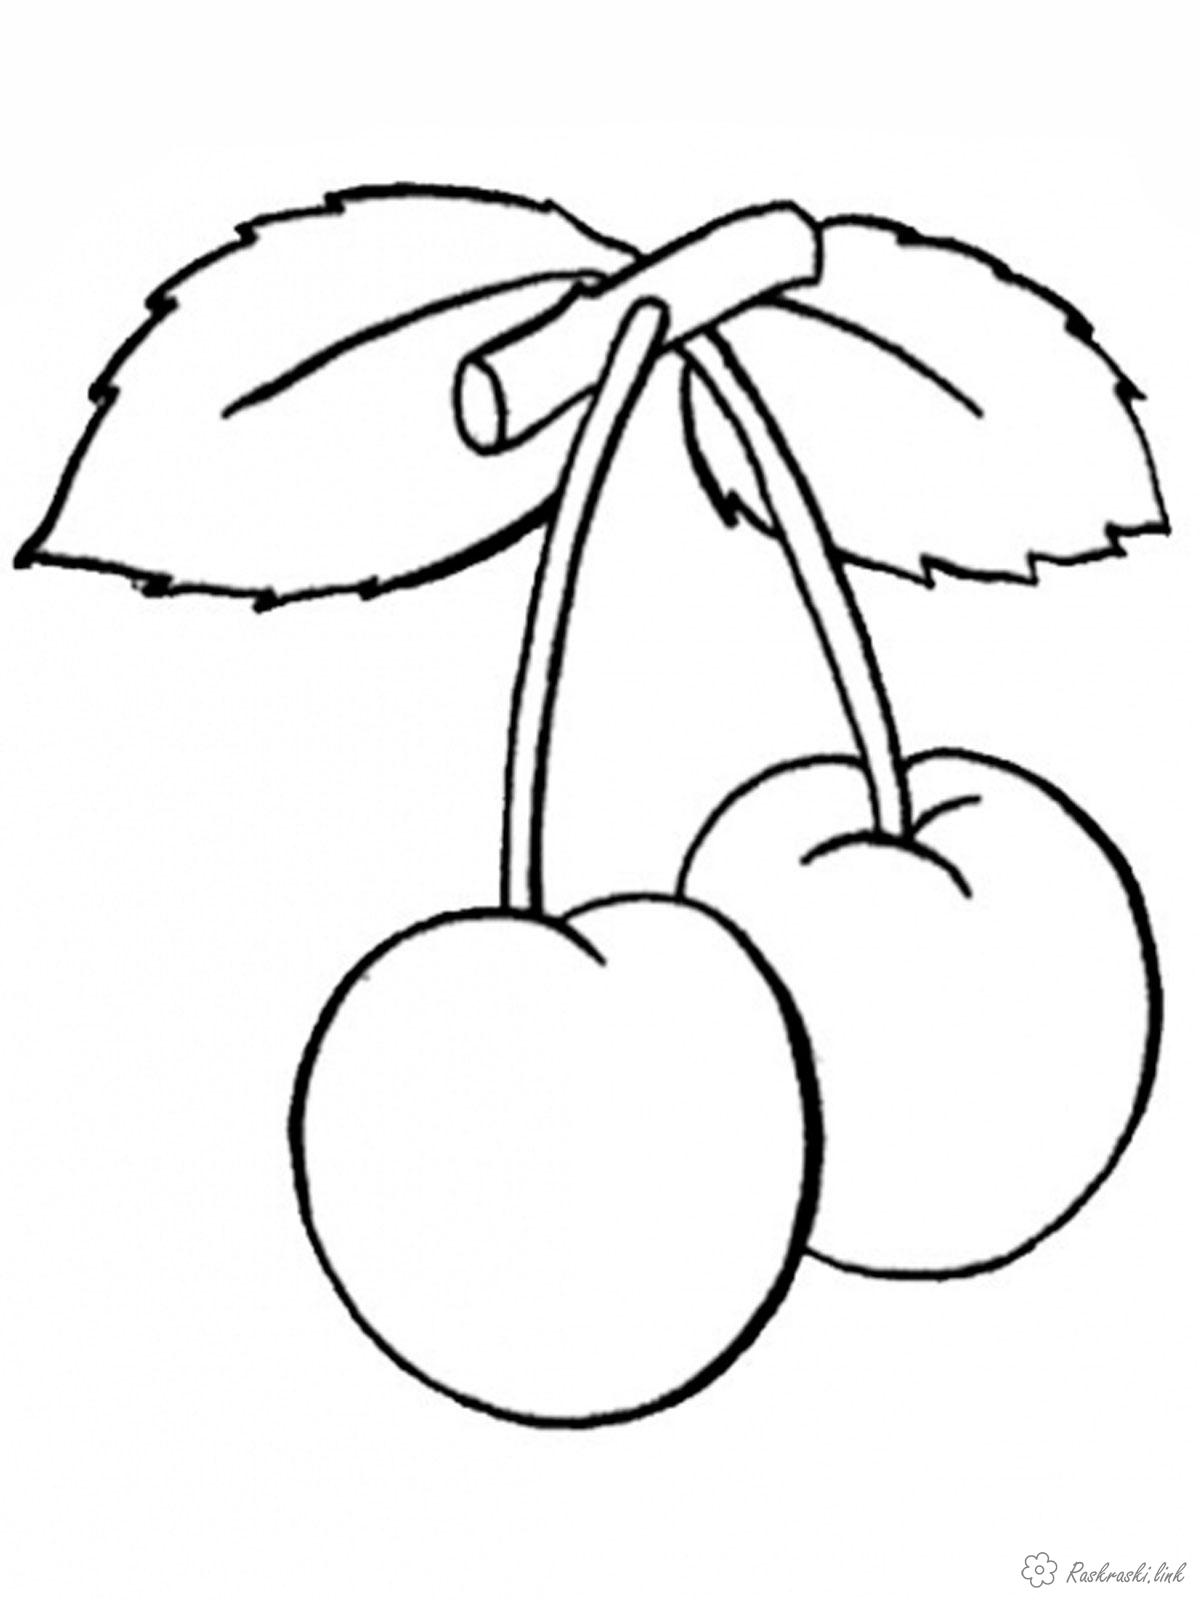 Coloring для Two cherries, delicious, ripe, juicy, coloring pages